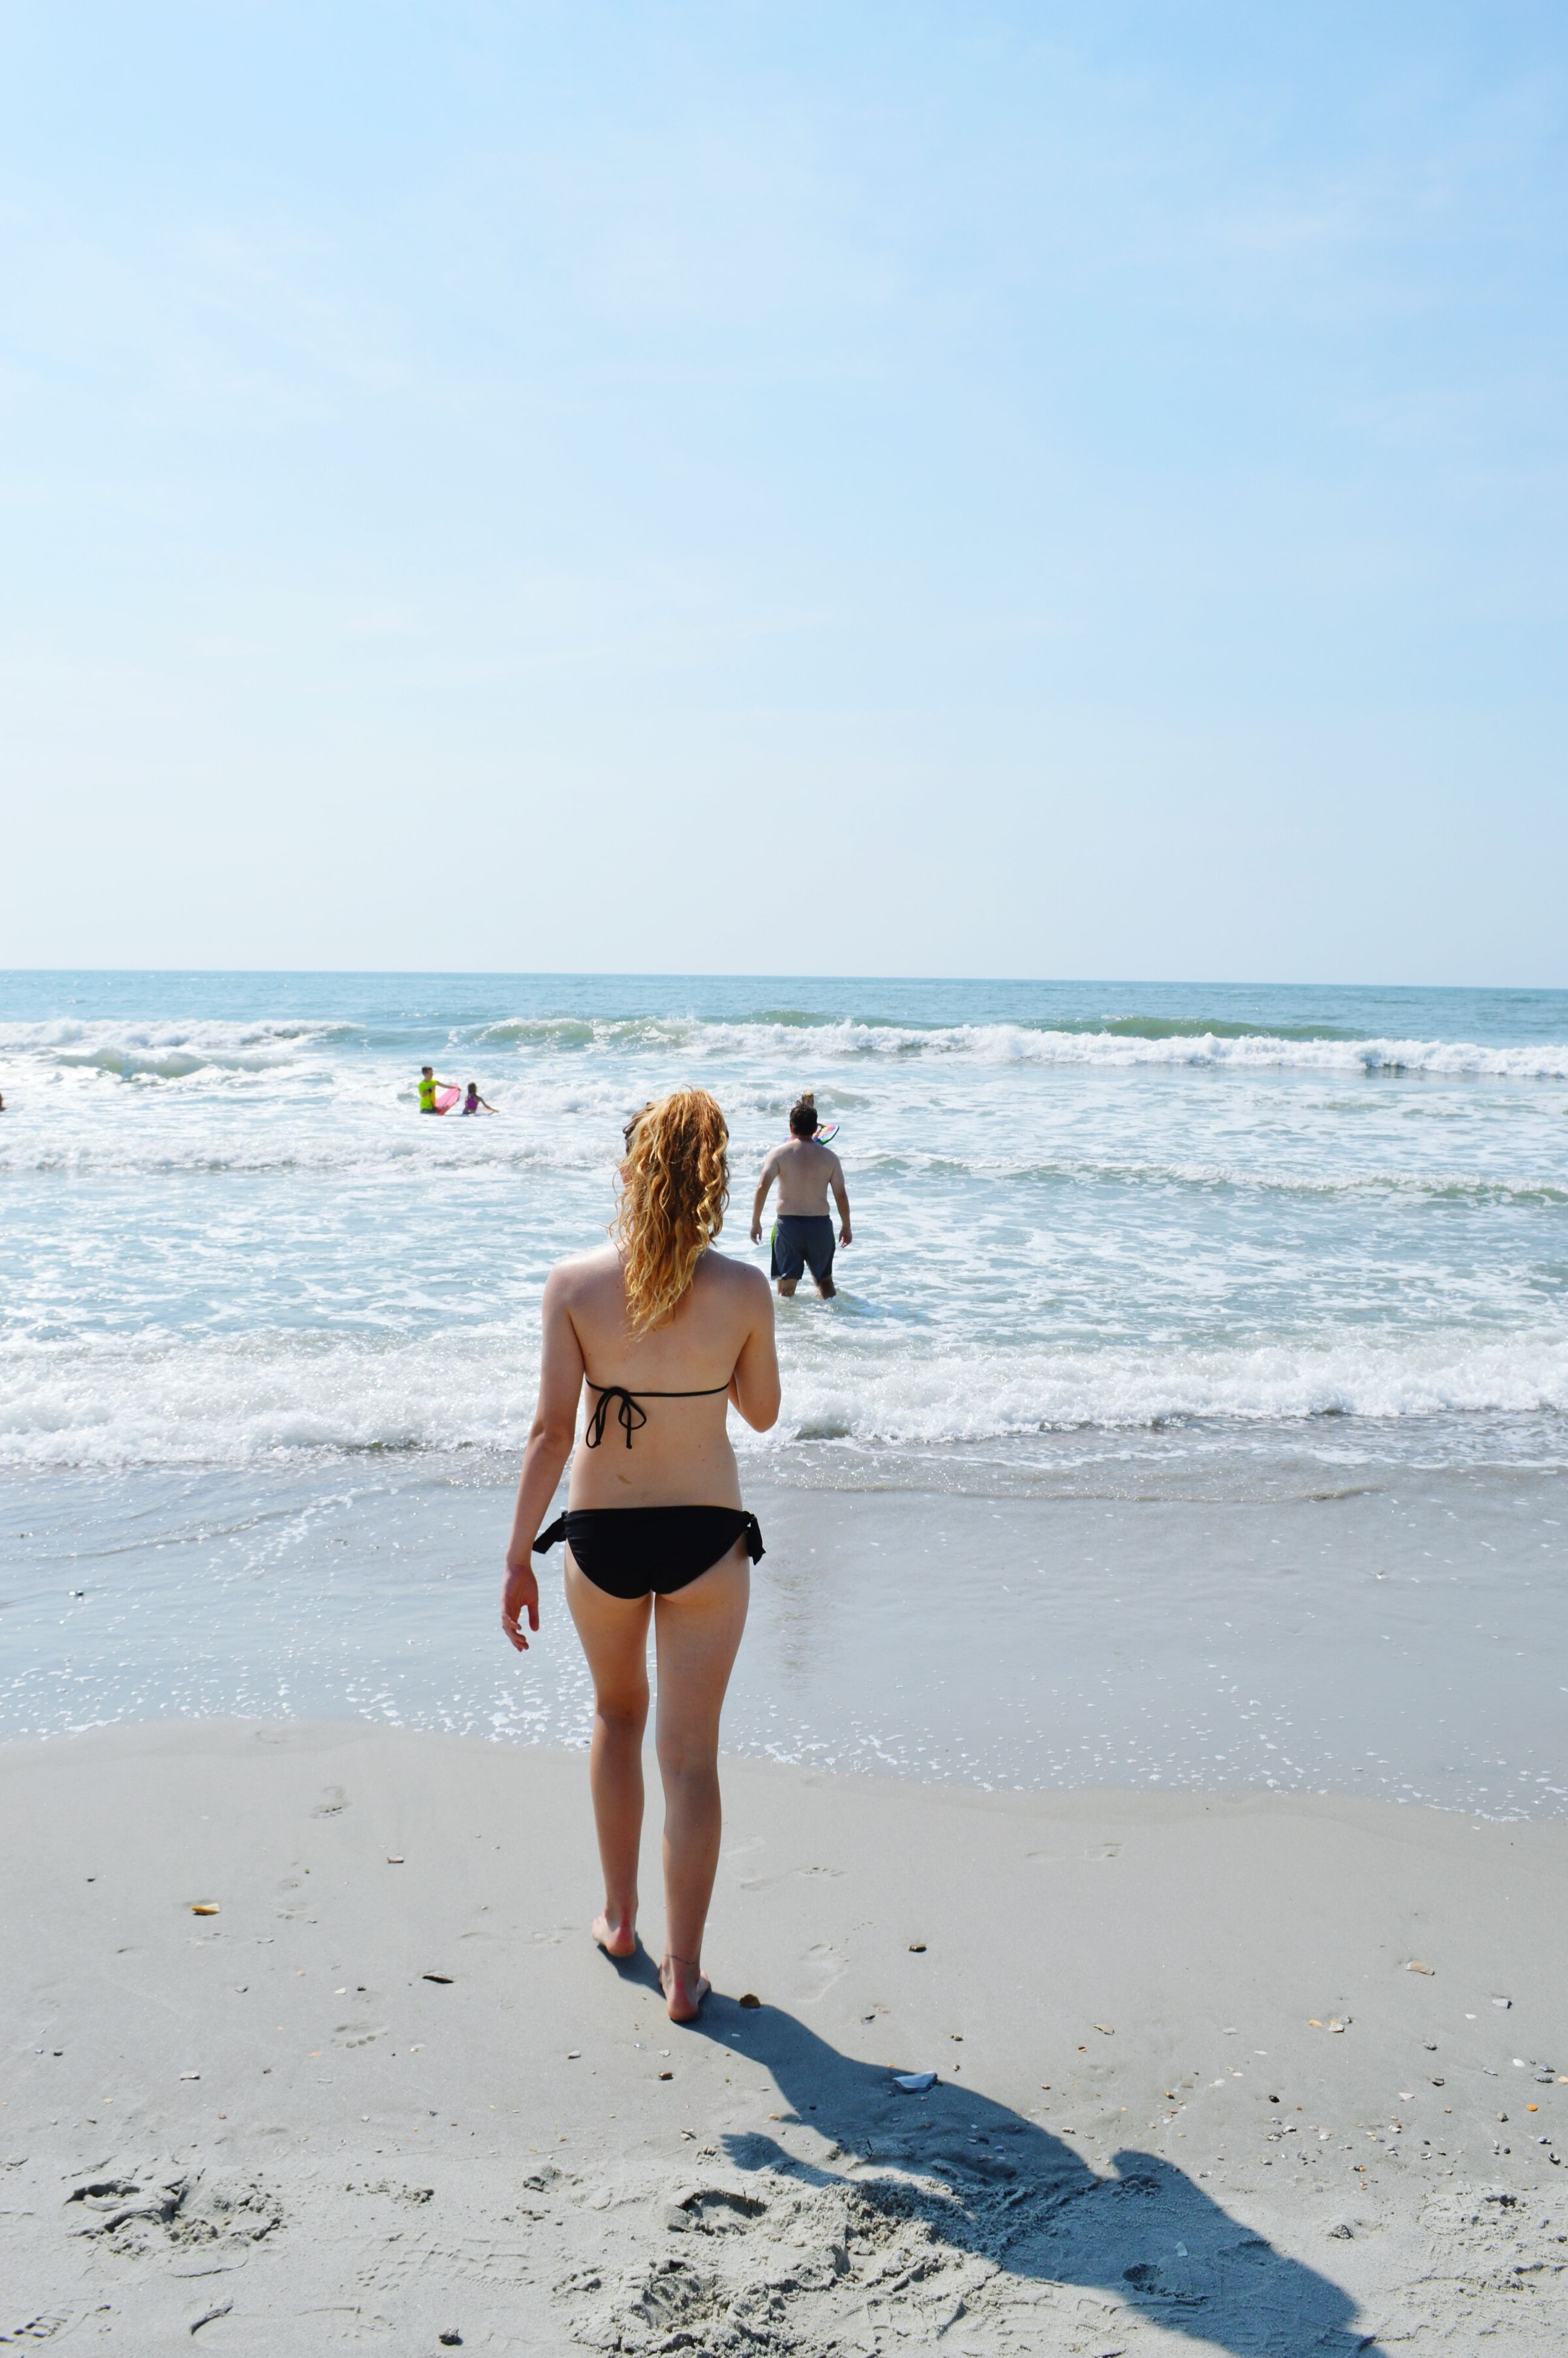 sea, beach, horizon over water, water, leisure activity, shore, lifestyles, sand, vacations, full length, rear view, togetherness, clear sky, person, sky, casual clothing, enjoyment, weekend activities, summer